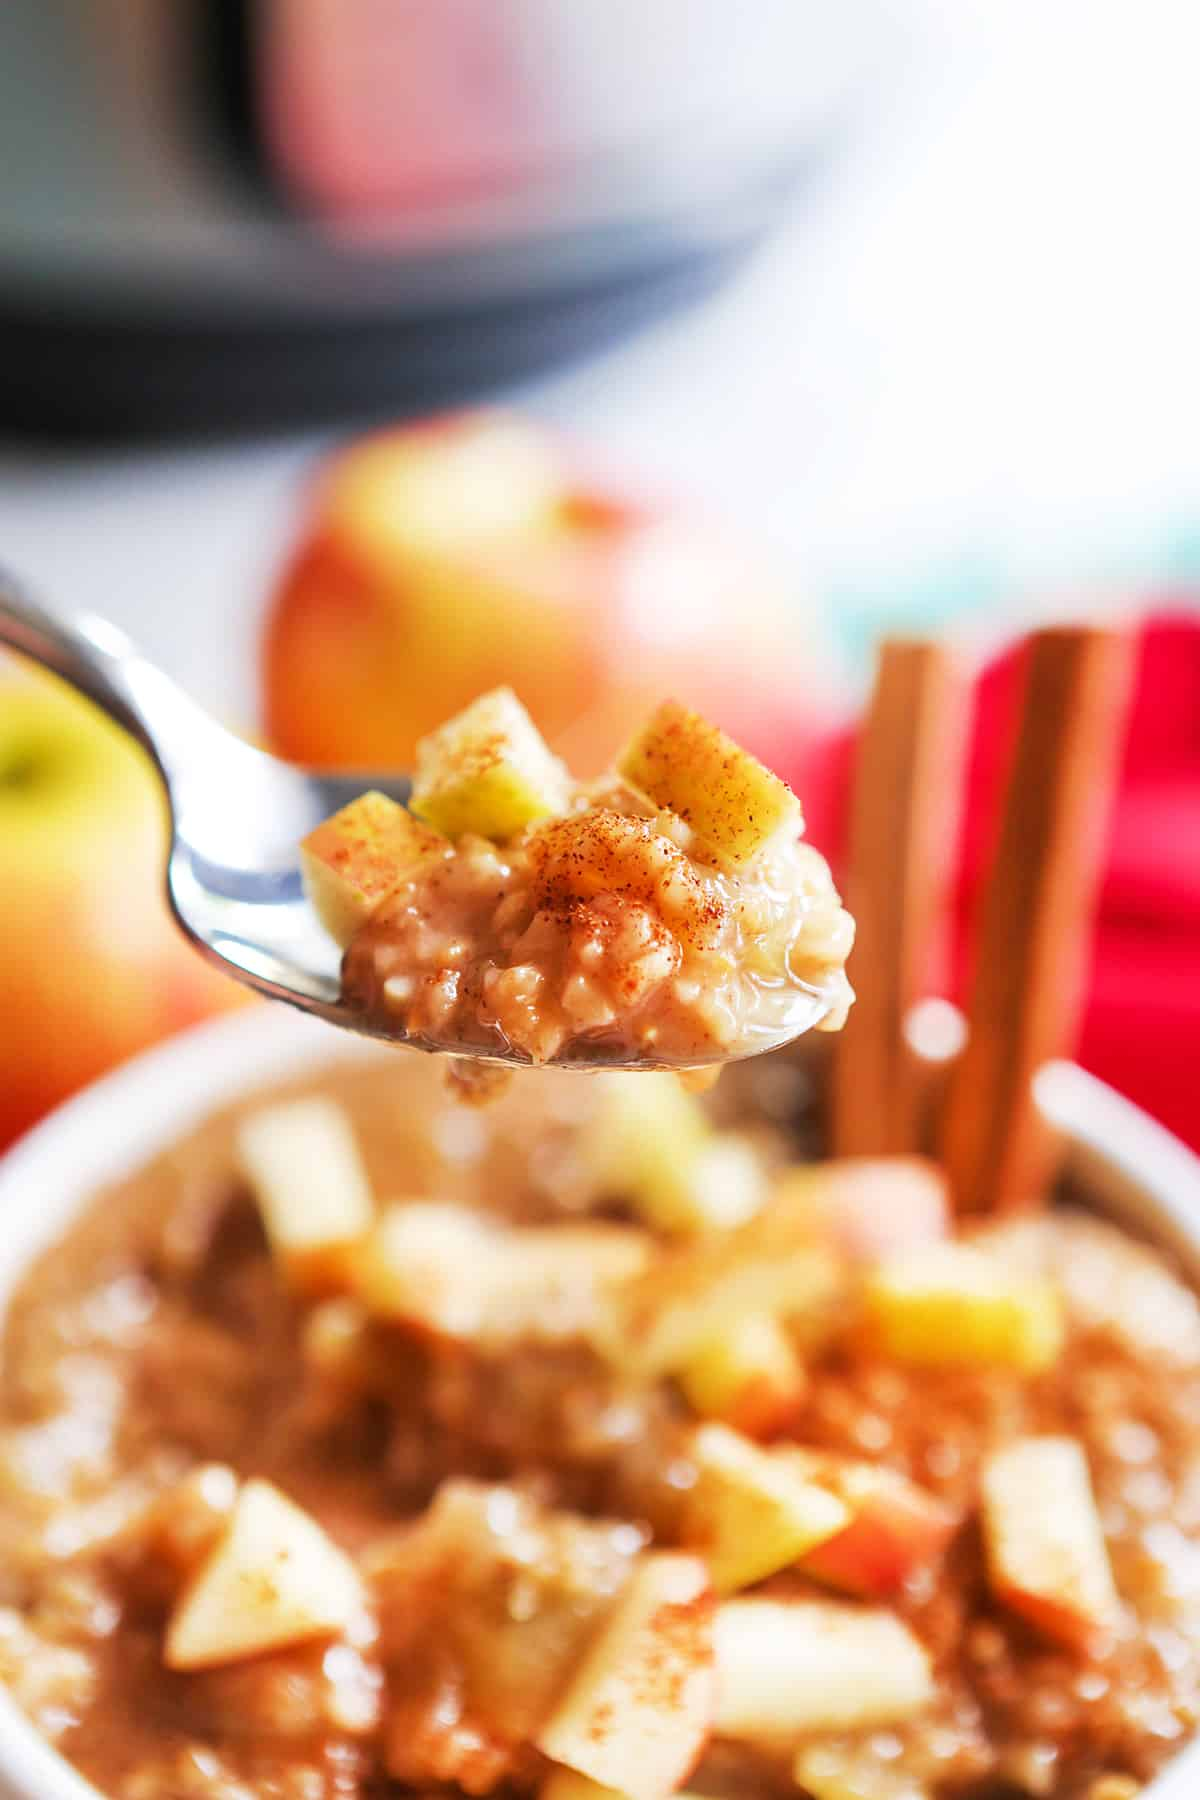 Spoon full of instant pot apple oatmeal in front of the bowl.